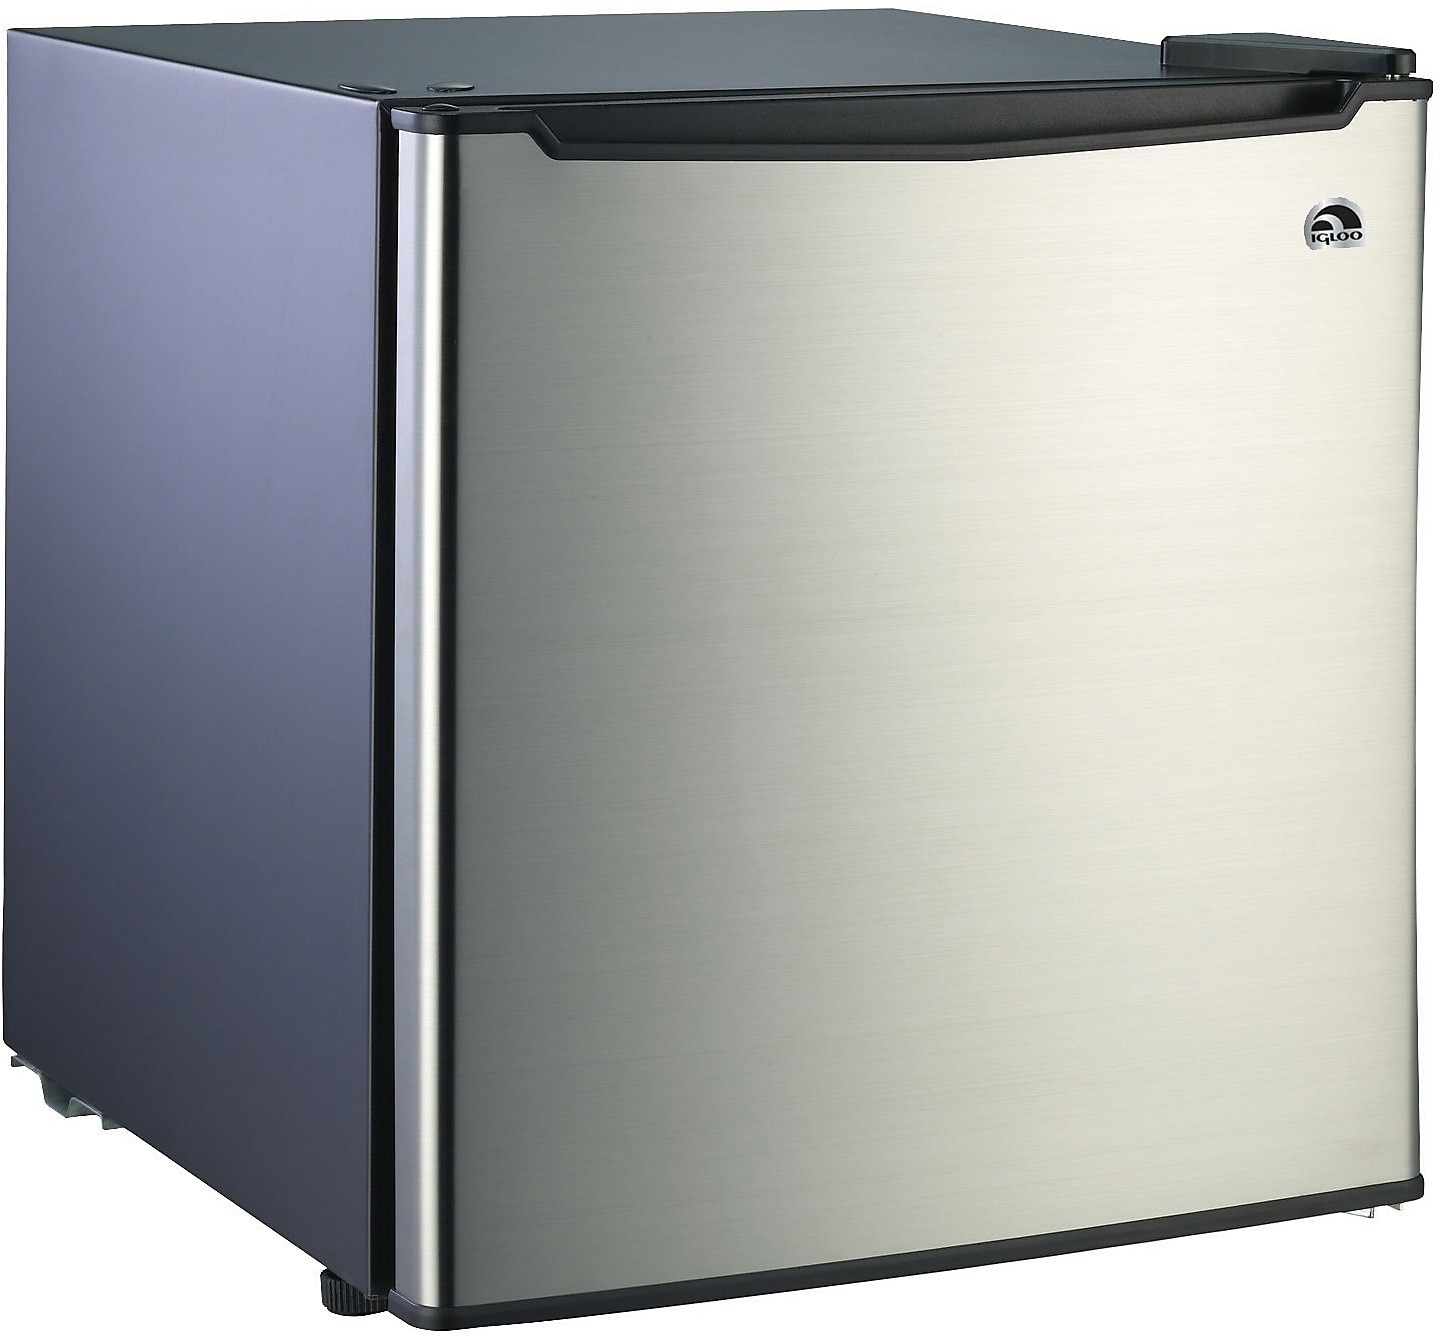 Refrigerators and Freezers - Igloo 1.7 Cu. Ft. Compact Refrigerator - Black with Stainless Steel